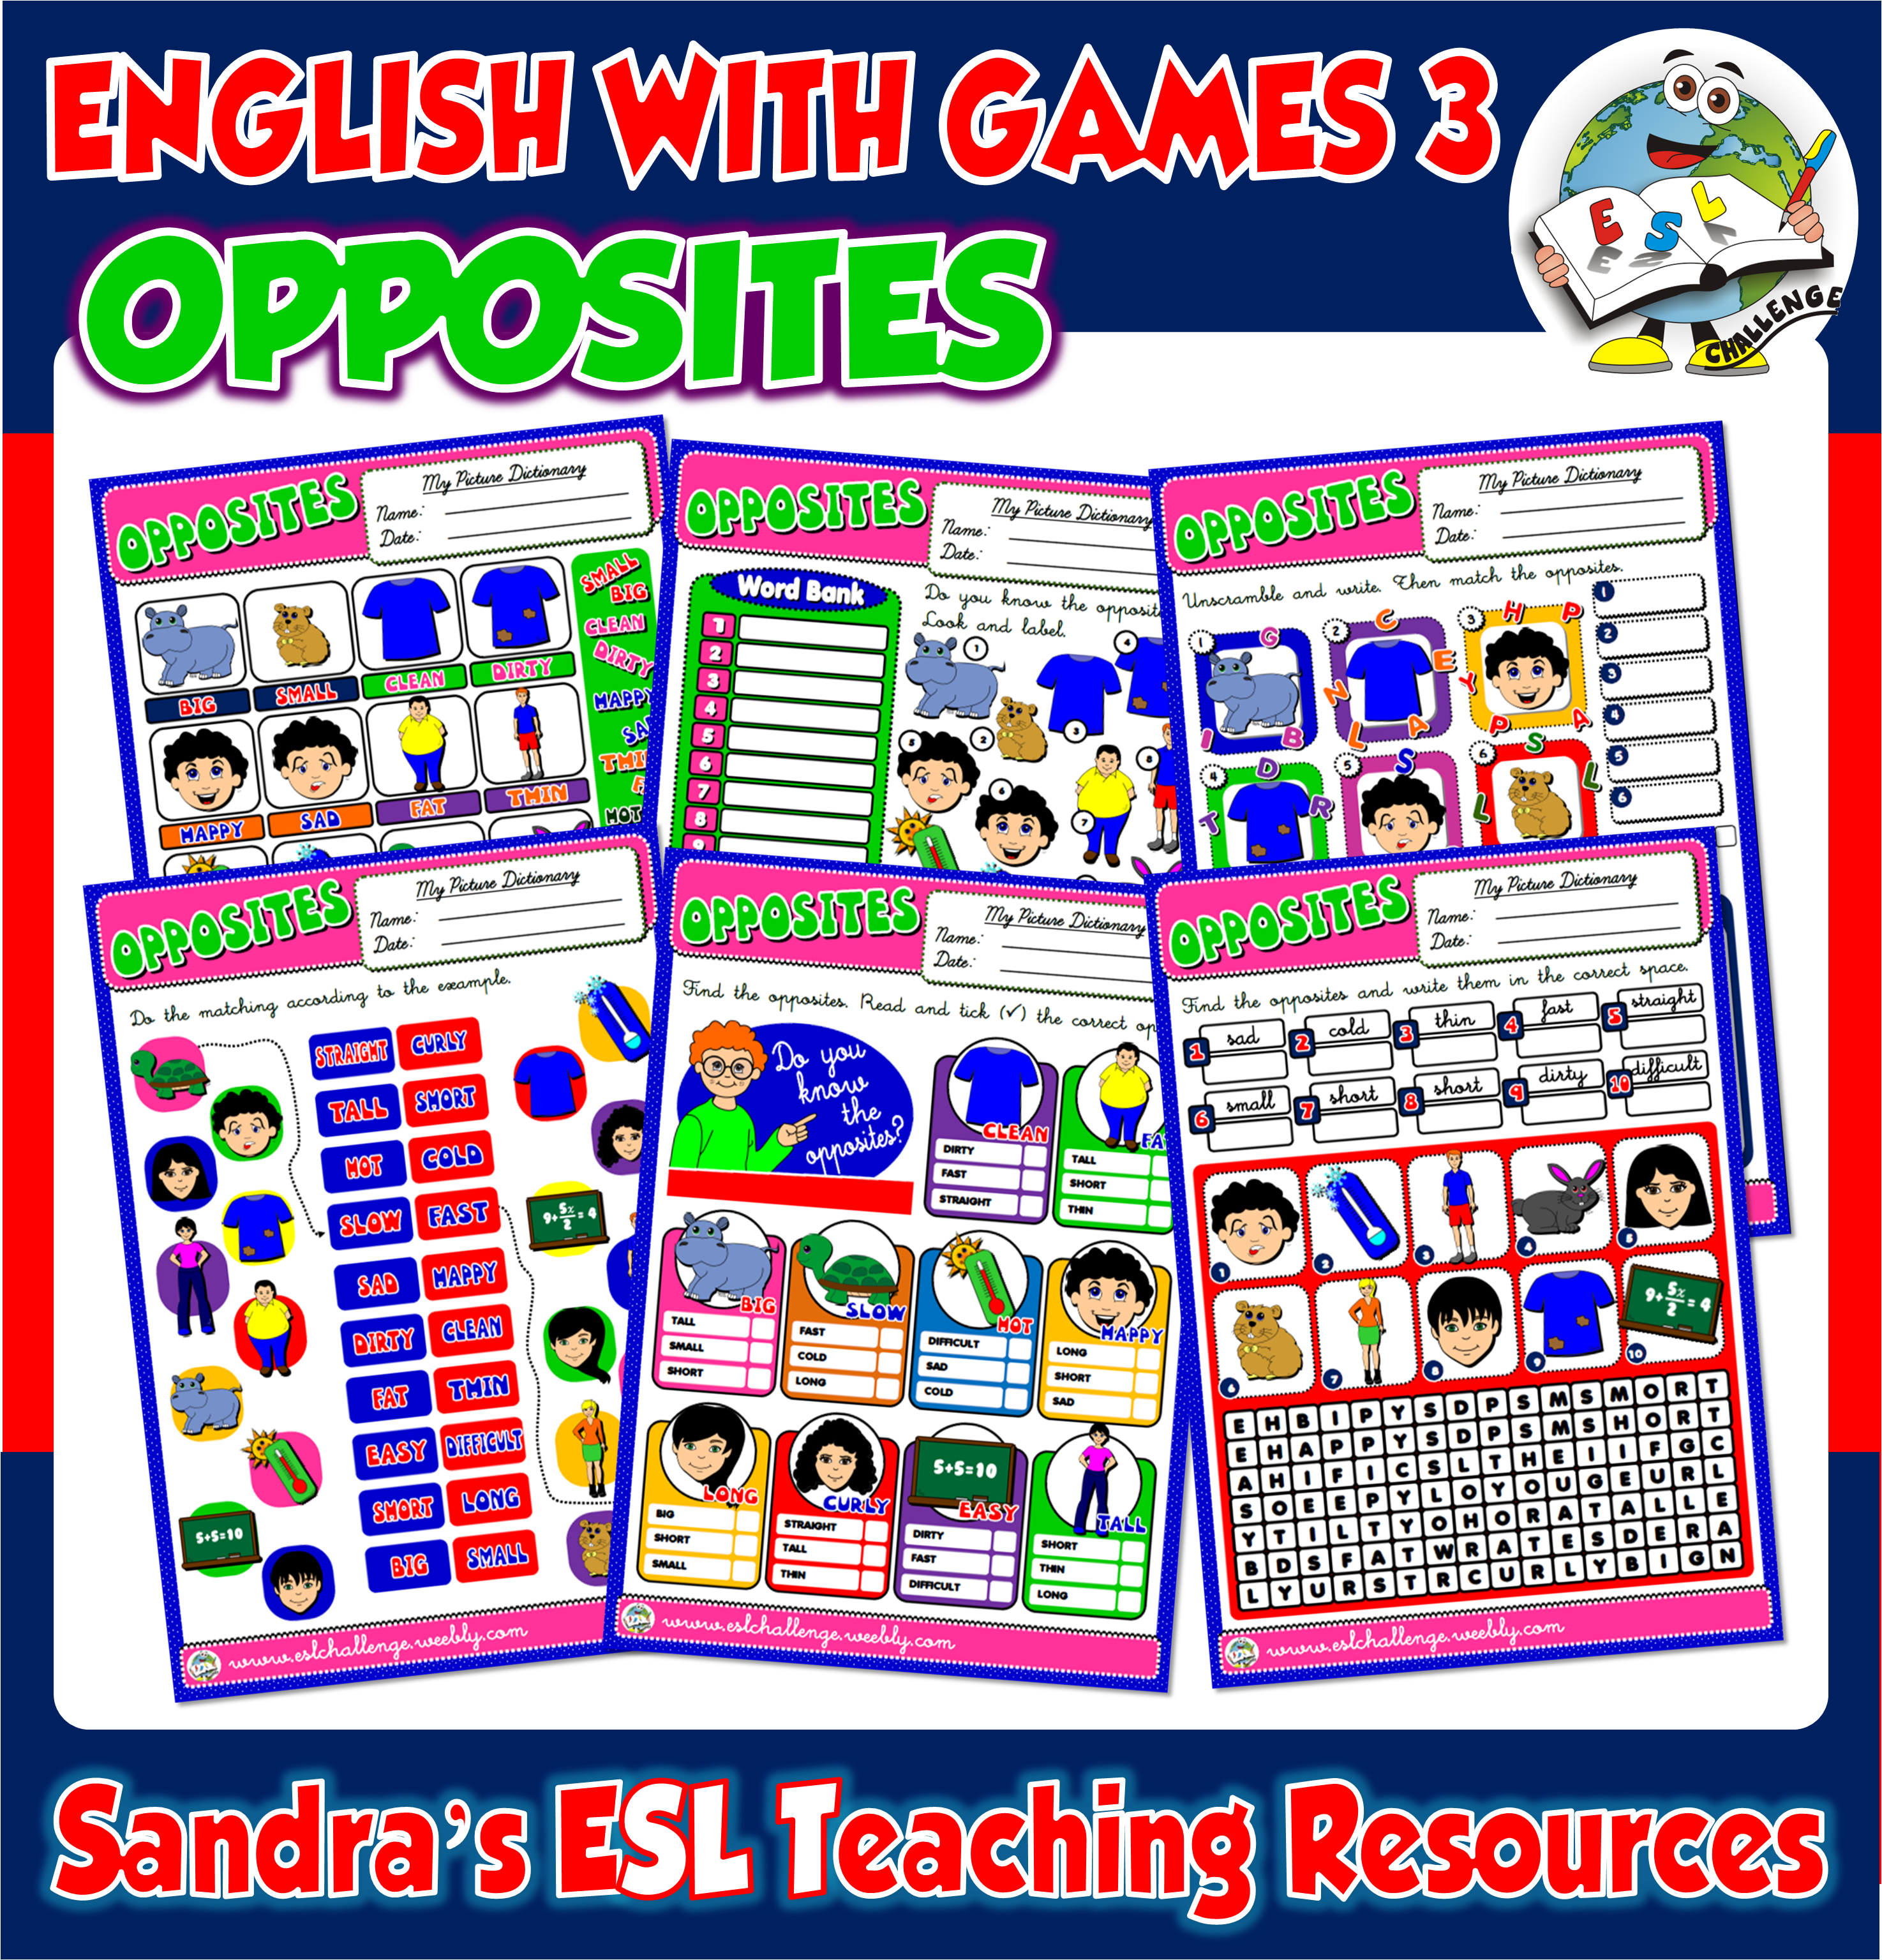 Opposites Worksheets Available In English With Games 3